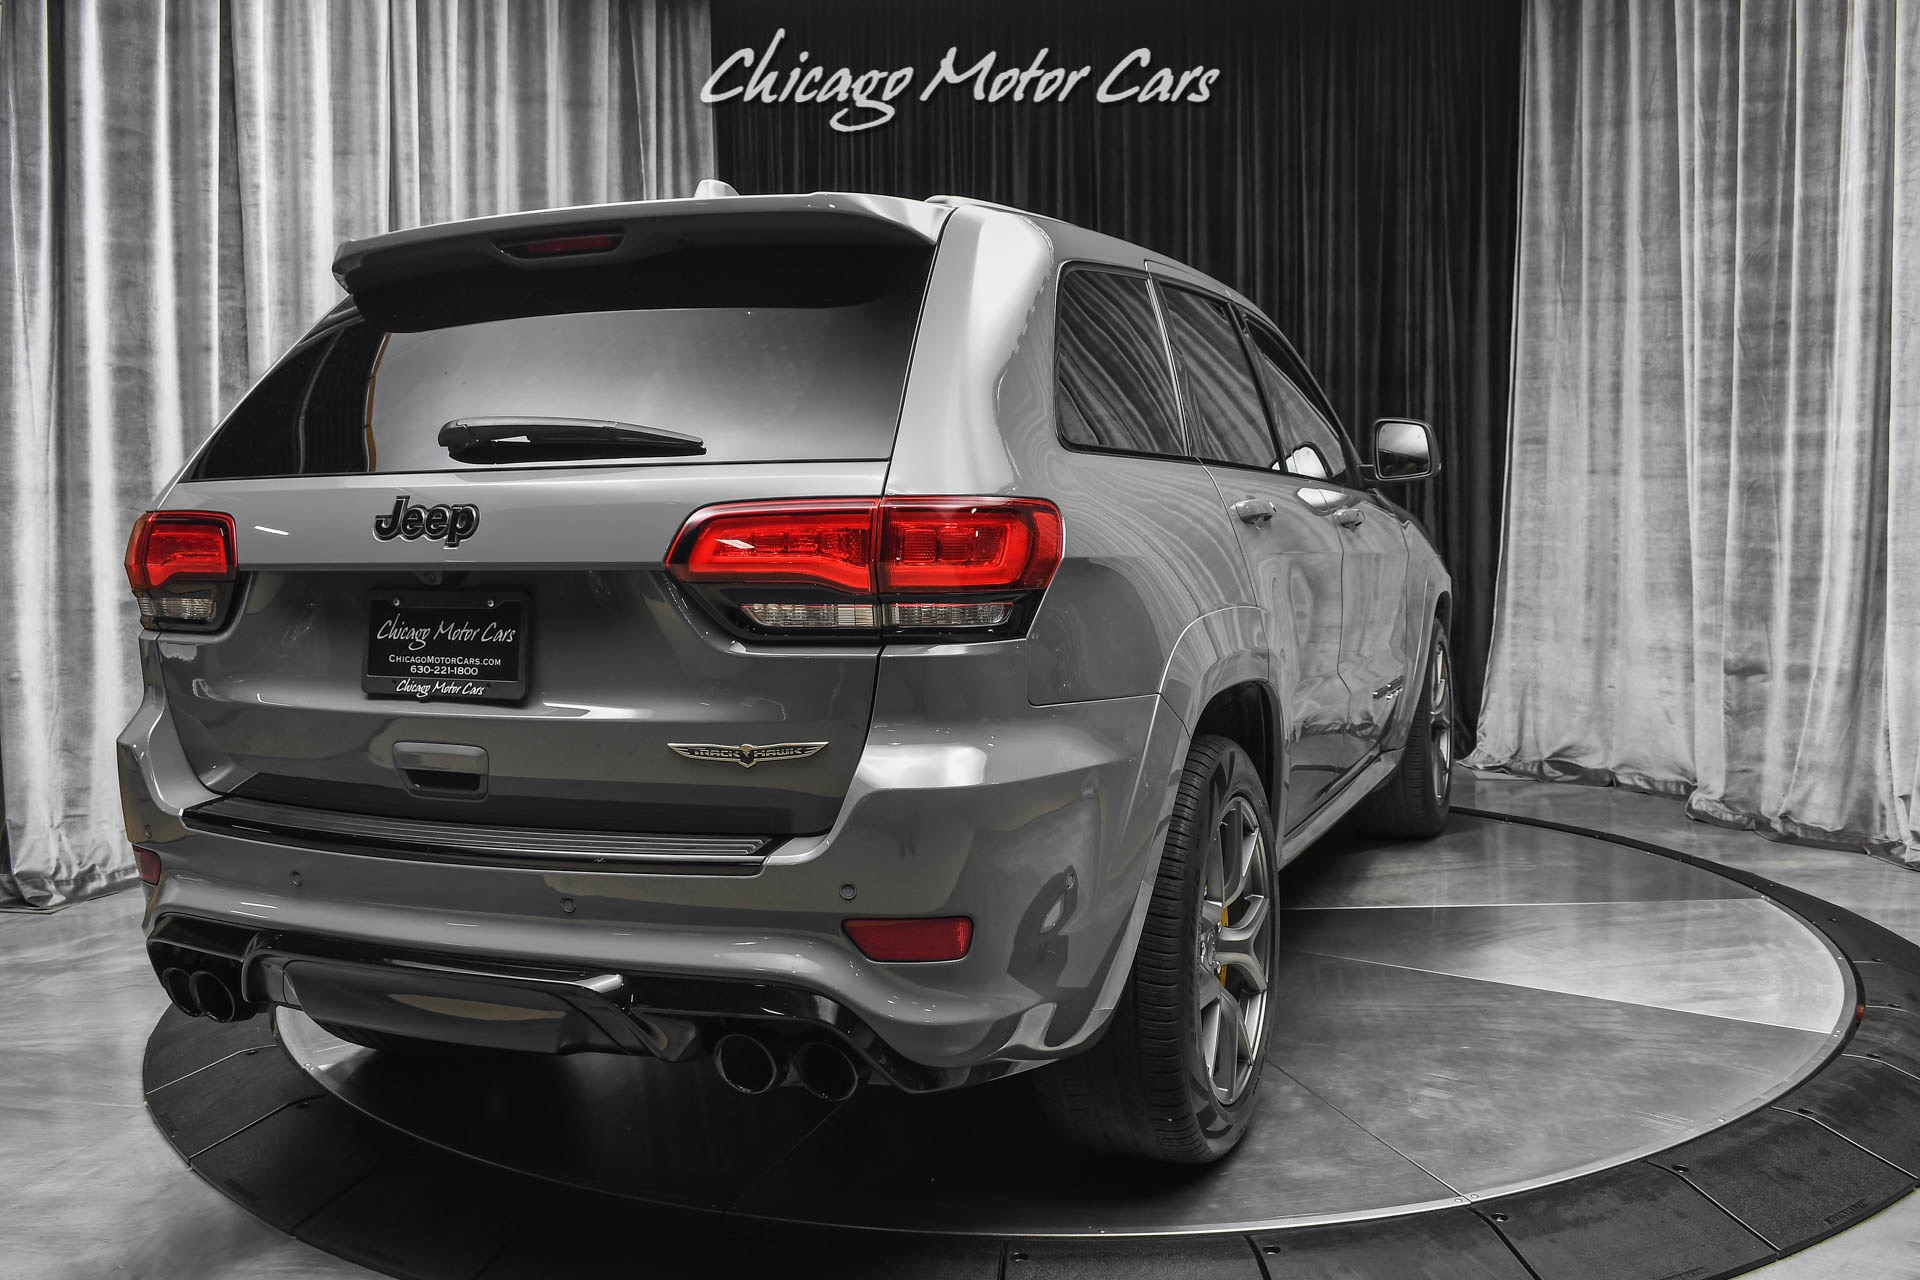 Used-2020-Jeep-Grand-Cherokee-Trackhawk-Dual-Pane-Sunroof-ProTech-Package-707-Horsepower